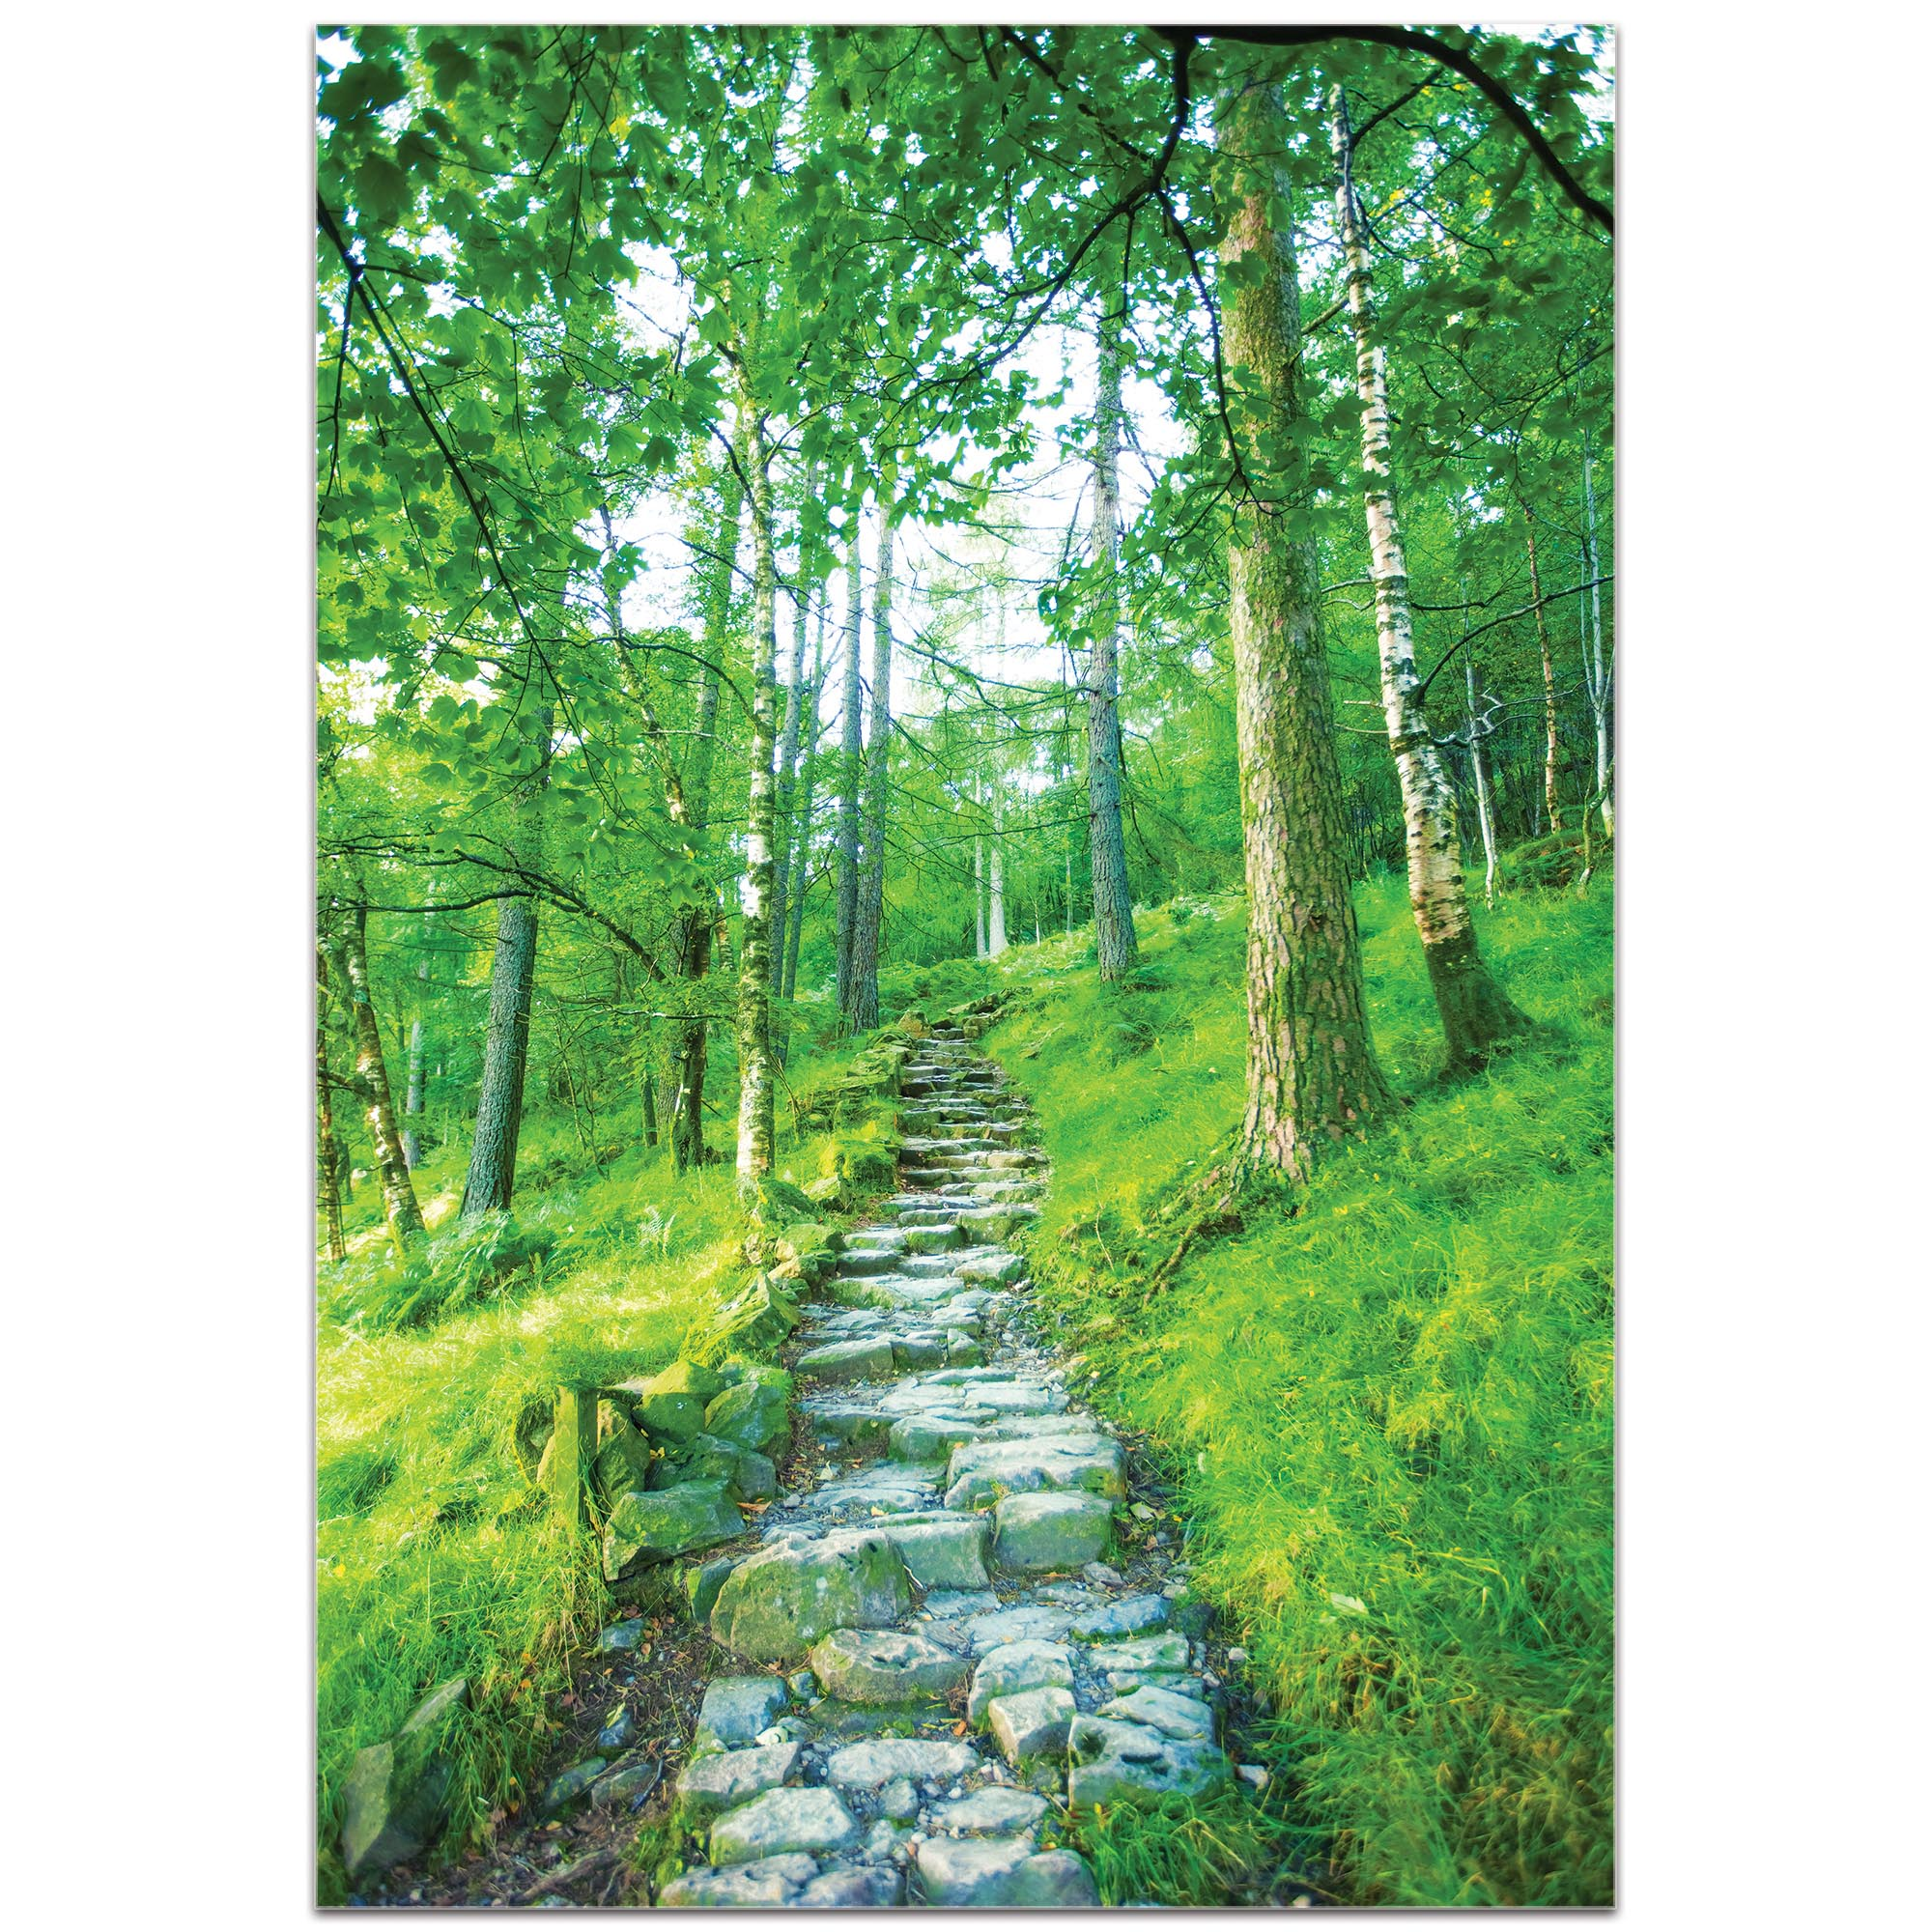 Landscape Photography 'Cobblestone Path' - Green Trees Art on Metal or Plexiglass - Image 2